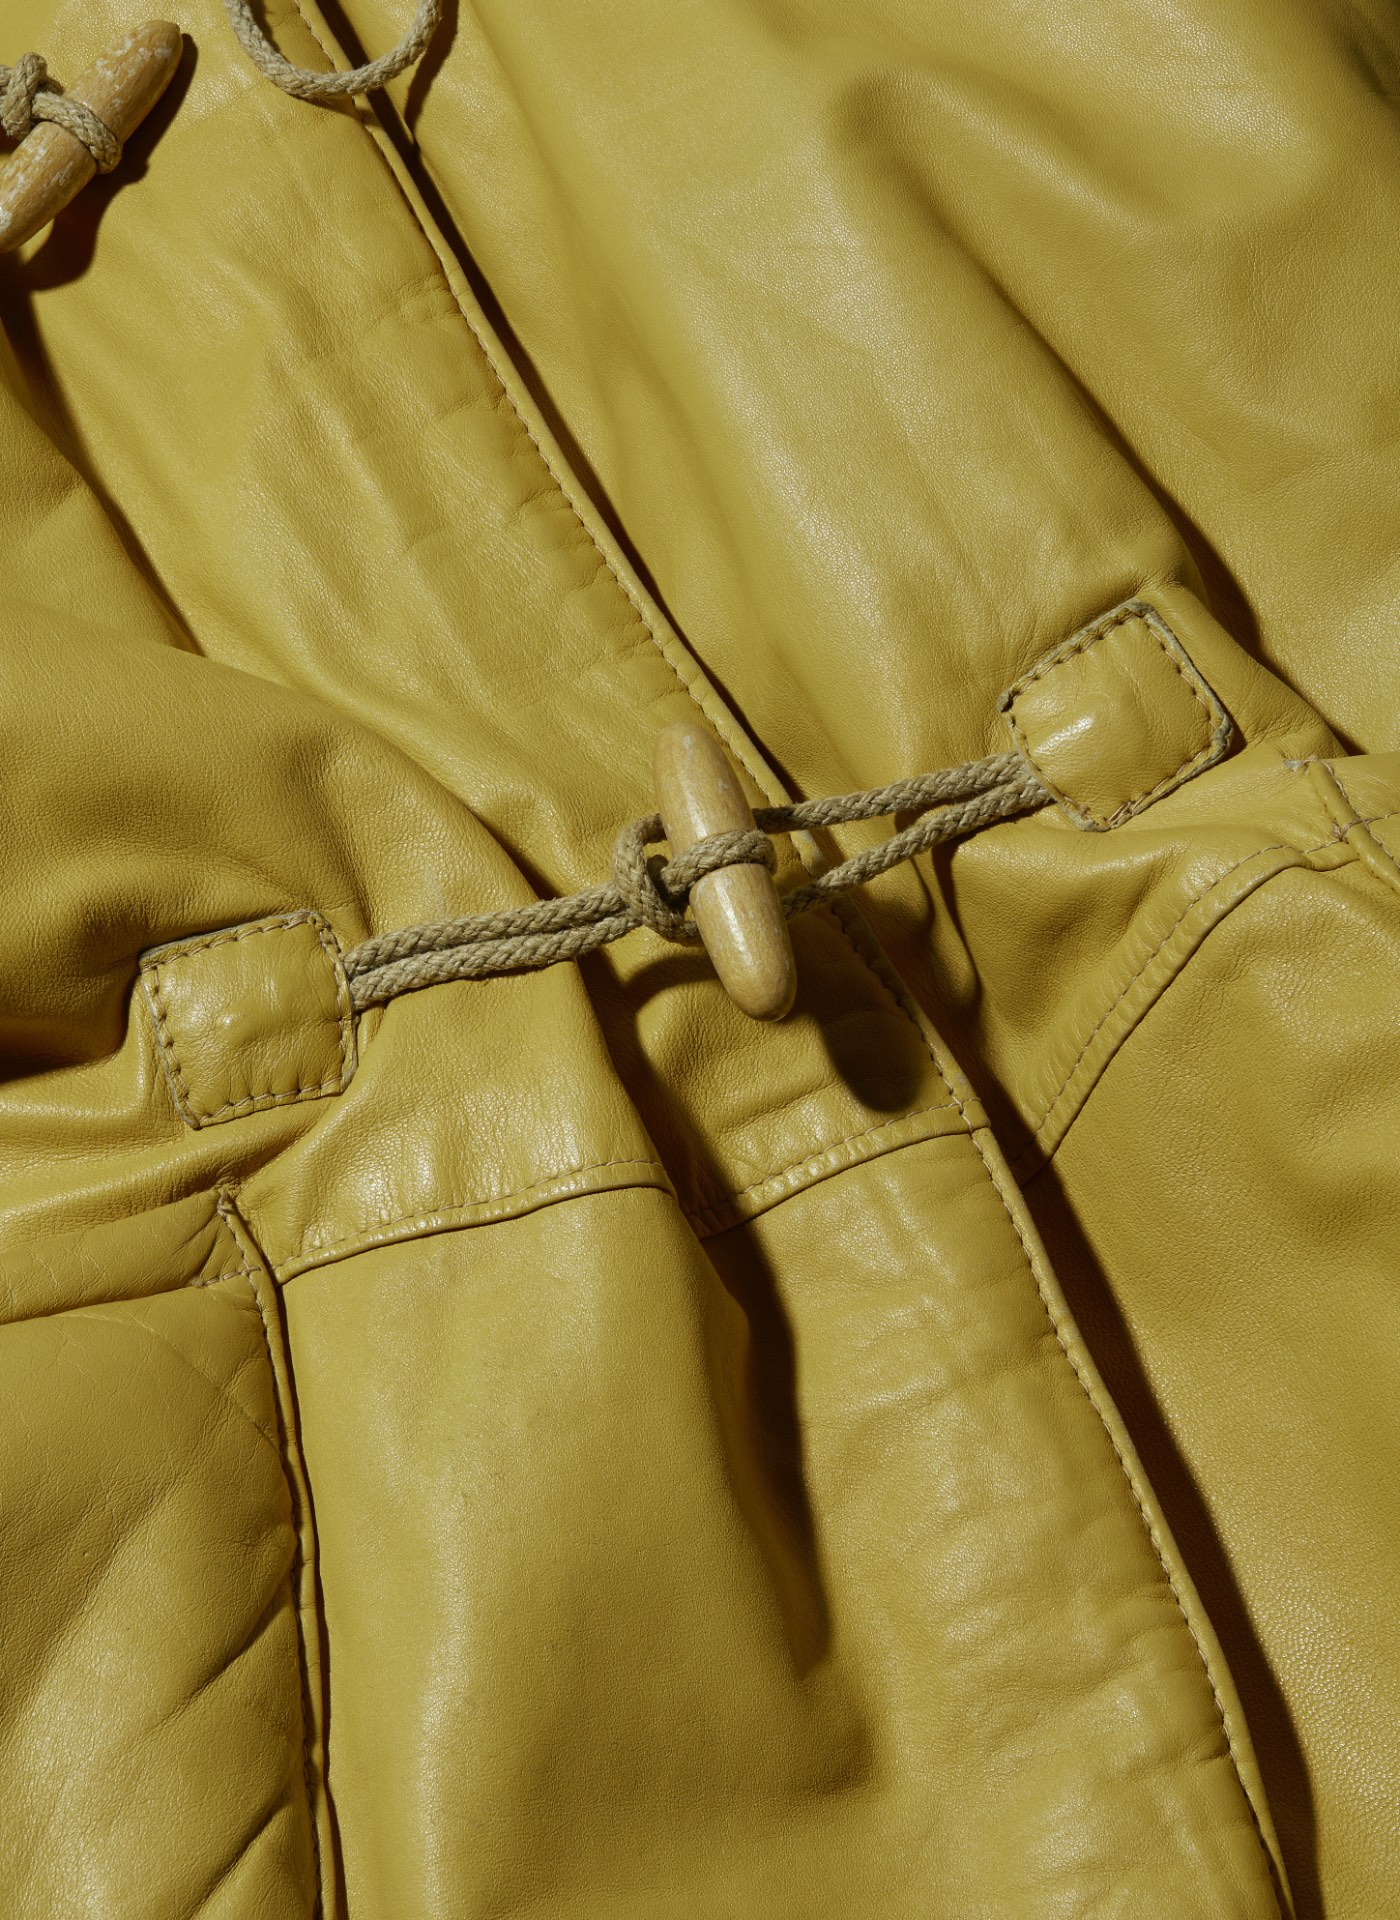 C.P. Company mustard yellow leather coat detail shot of button